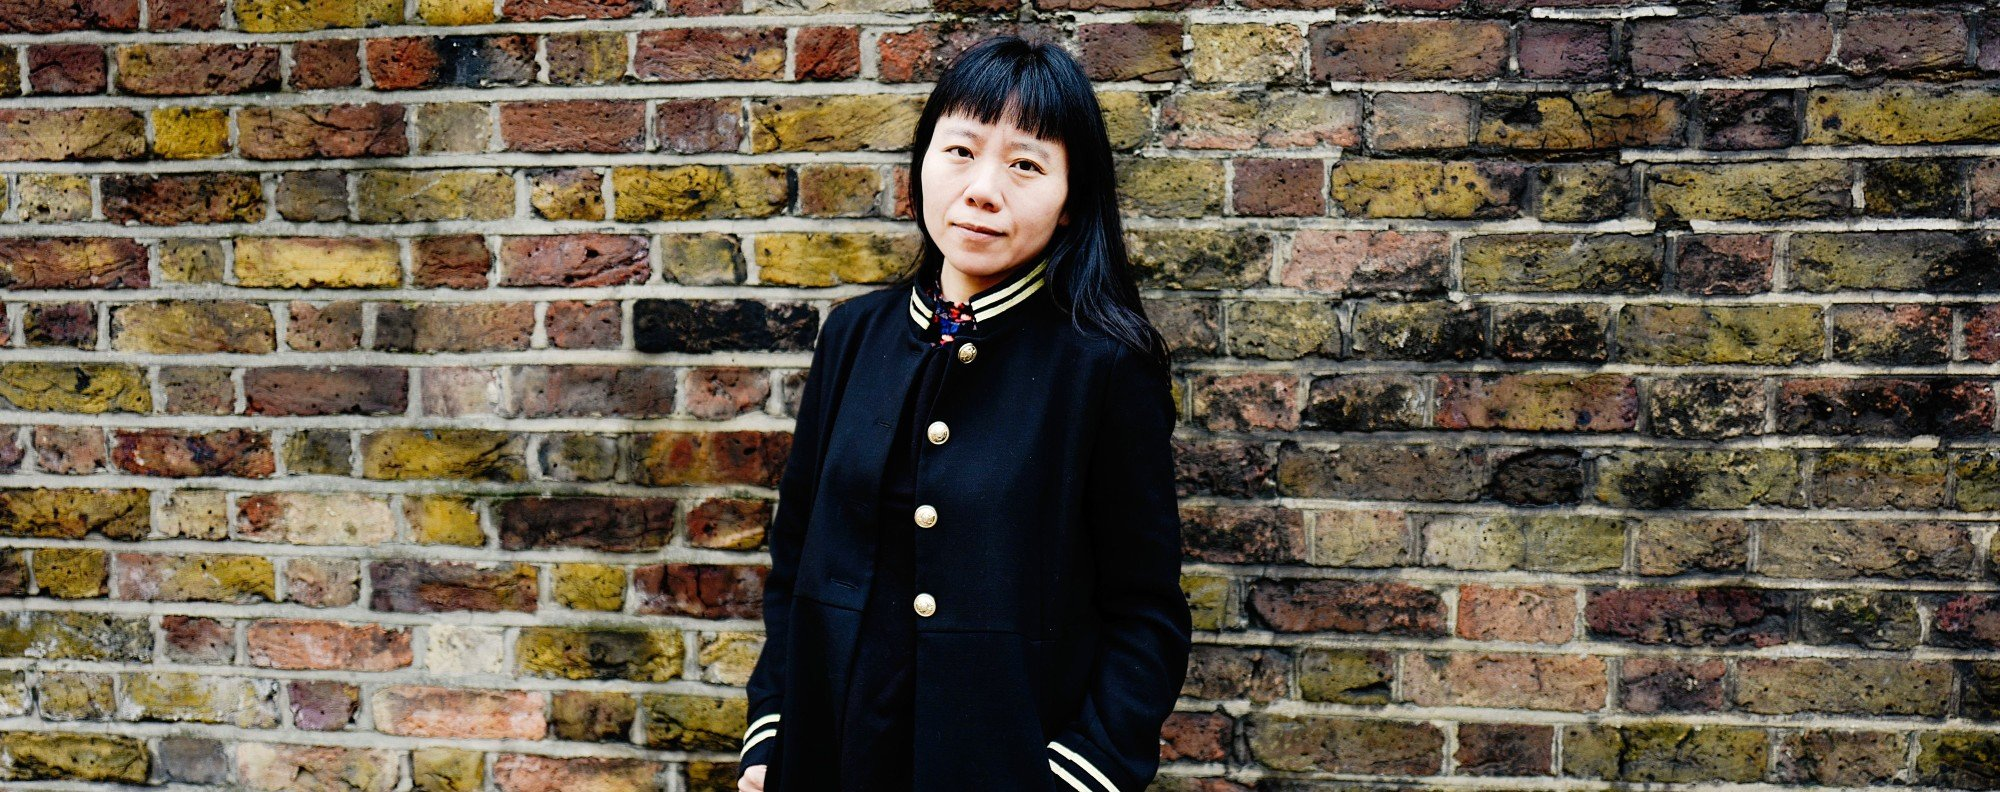 Author Xiaolu Guo. Picture: Ki Price